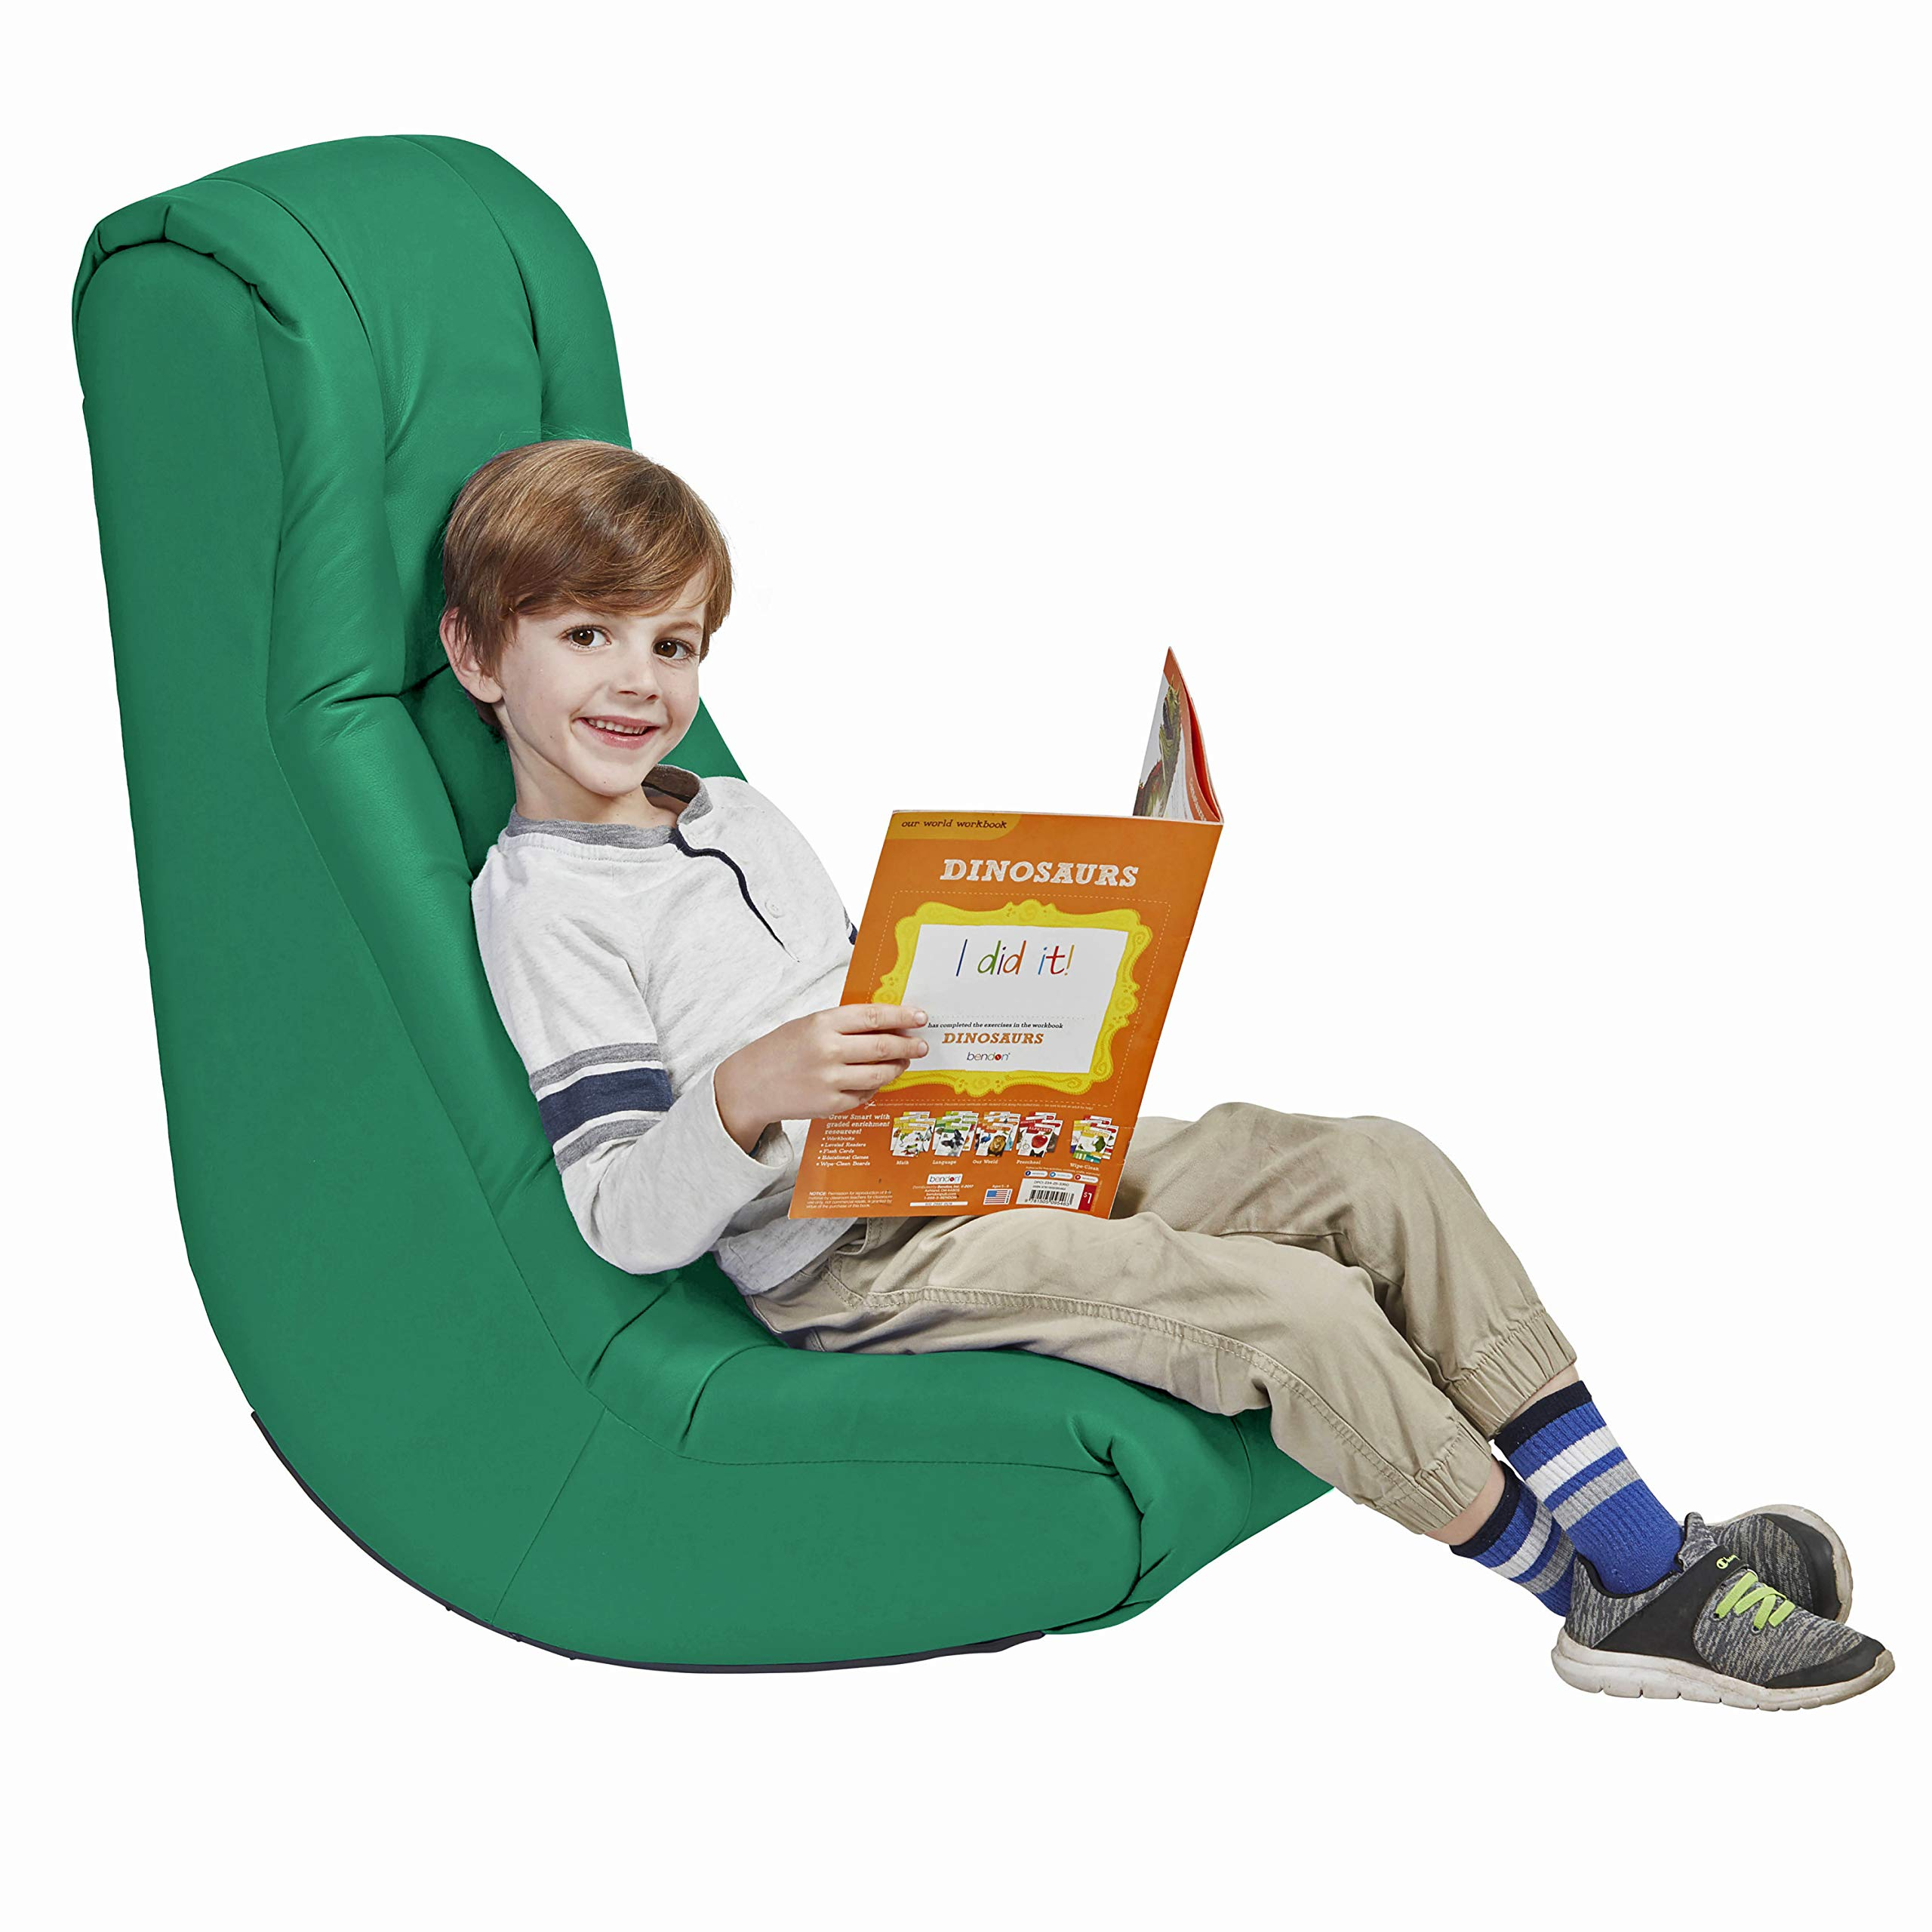 Soft Video Rocker - Cushioned Floor Chair for Kids, Teens and Adults - Great for Reading, Gaming, Meditating, TV - Green